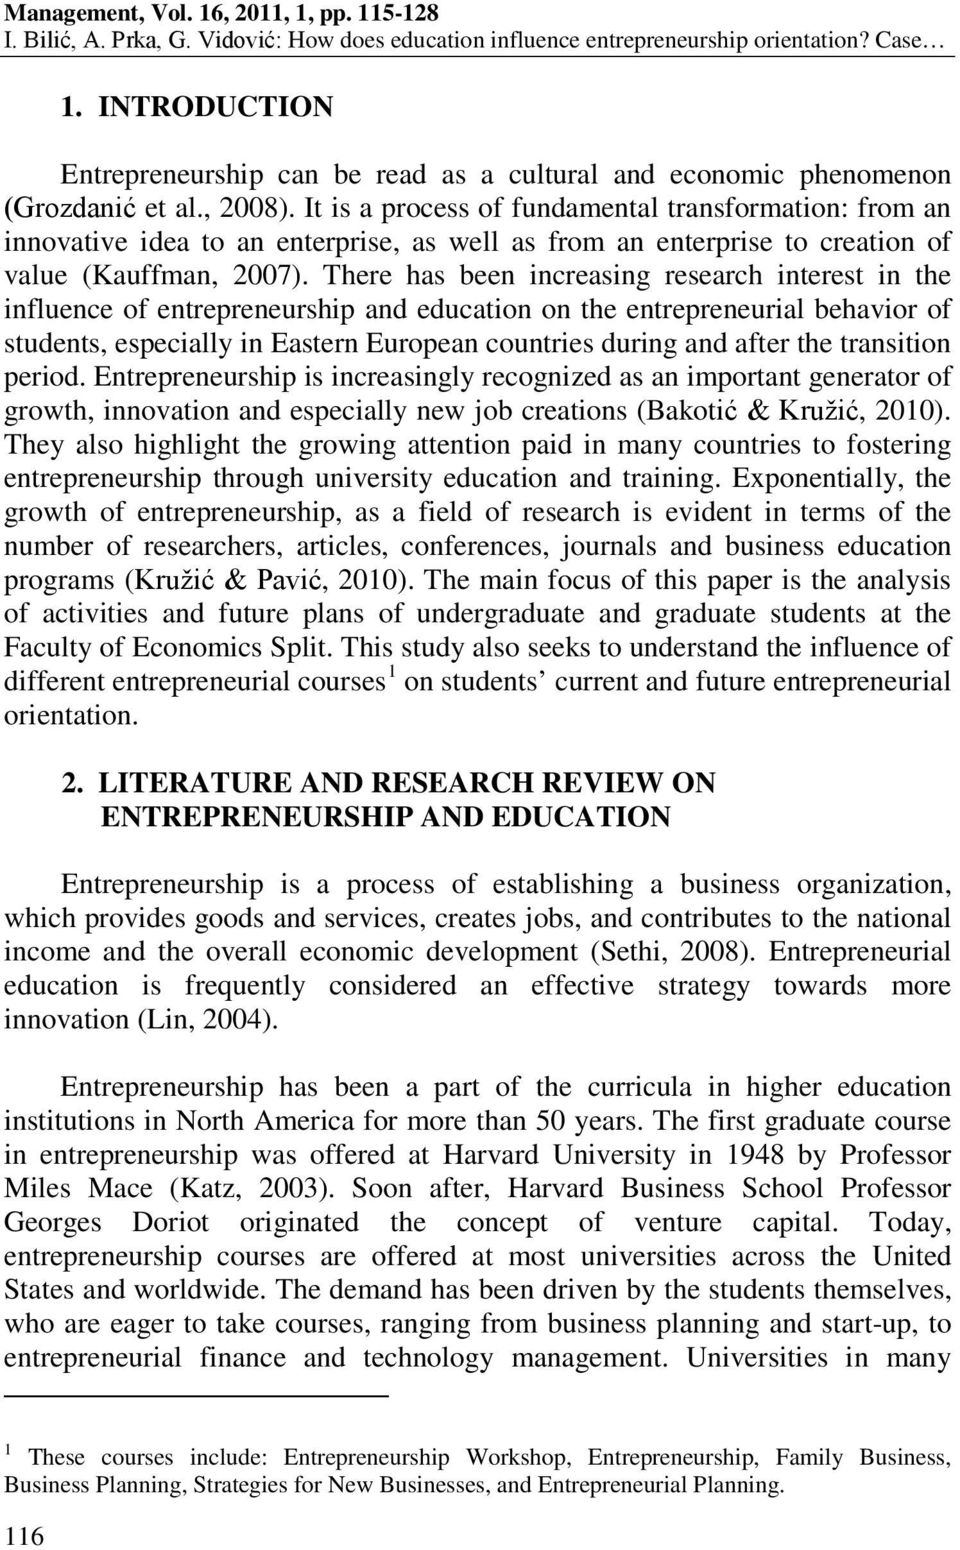 There has been increasing research interest in the influence of entrepreneurship and education on the entrepreneurial behavior of students, especially in Eastern European countries during and after